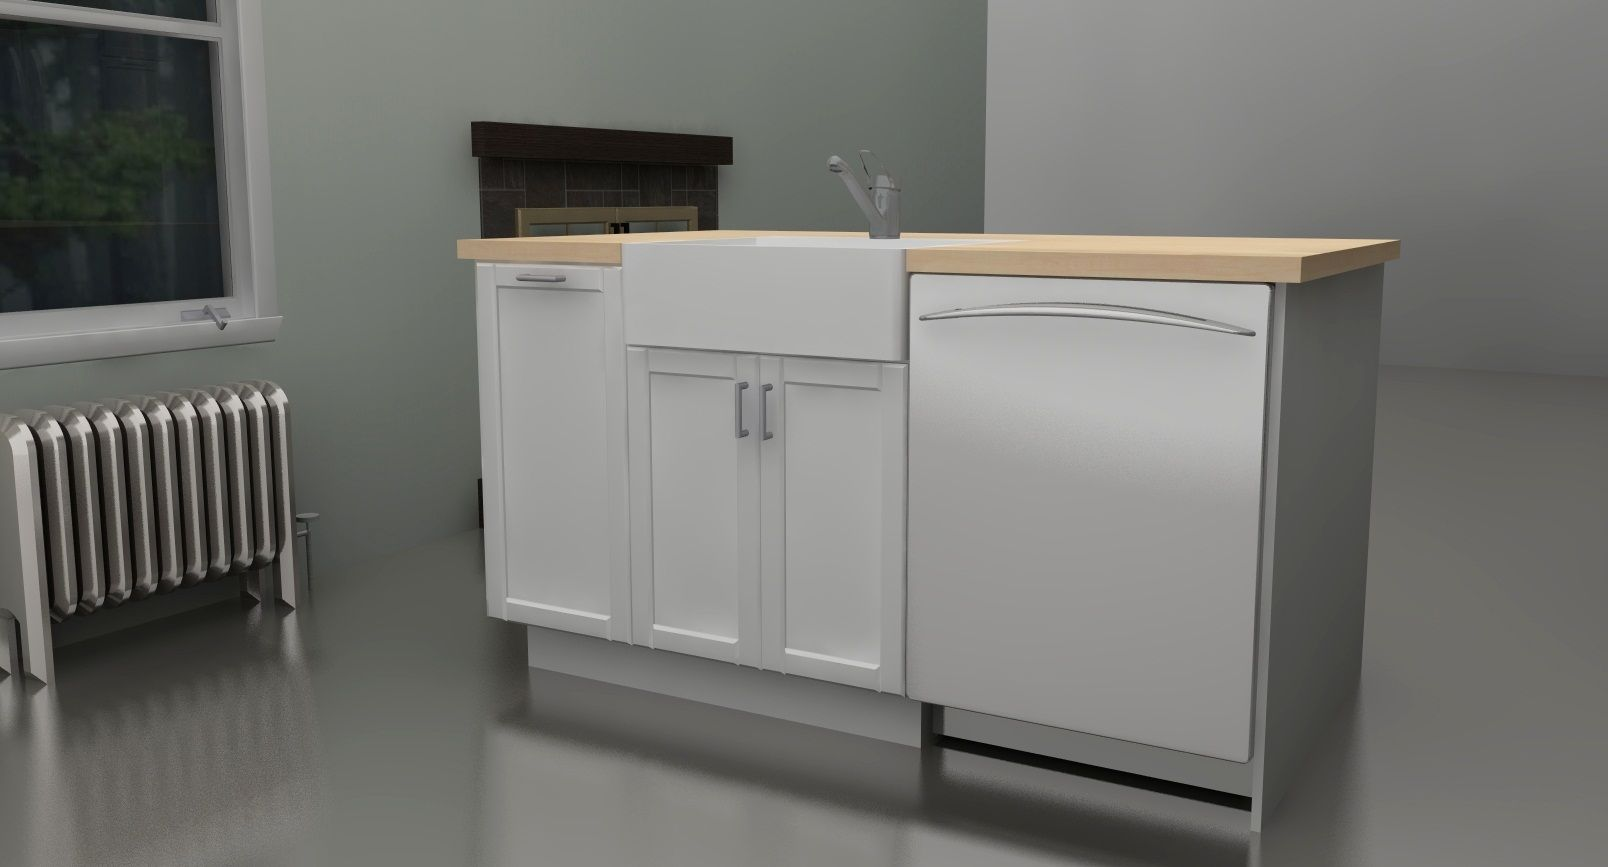 Ikea Kitchen Island With Sink island with apron sink - yahoo image search results | clarksville